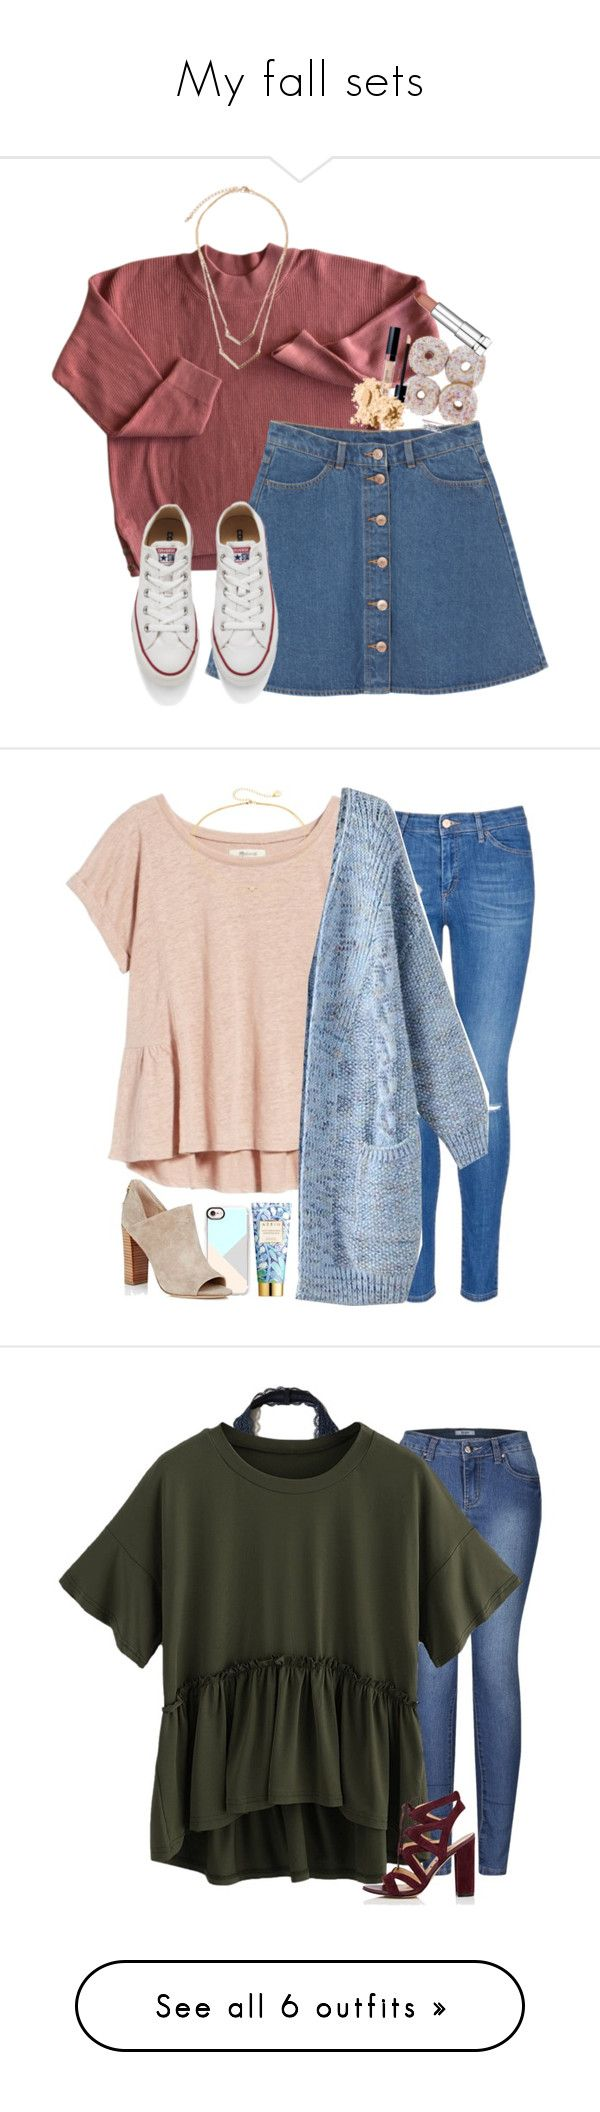 """""""My fall sets"""" by gra-nola ❤ liked on Polyvore featuring T By Alexander Wang, Monki, Converse, Christian Dior, Bobbi Brown Cosmetics, Maybelline, Topshop, Madewell, Cloverpost and AERIN"""